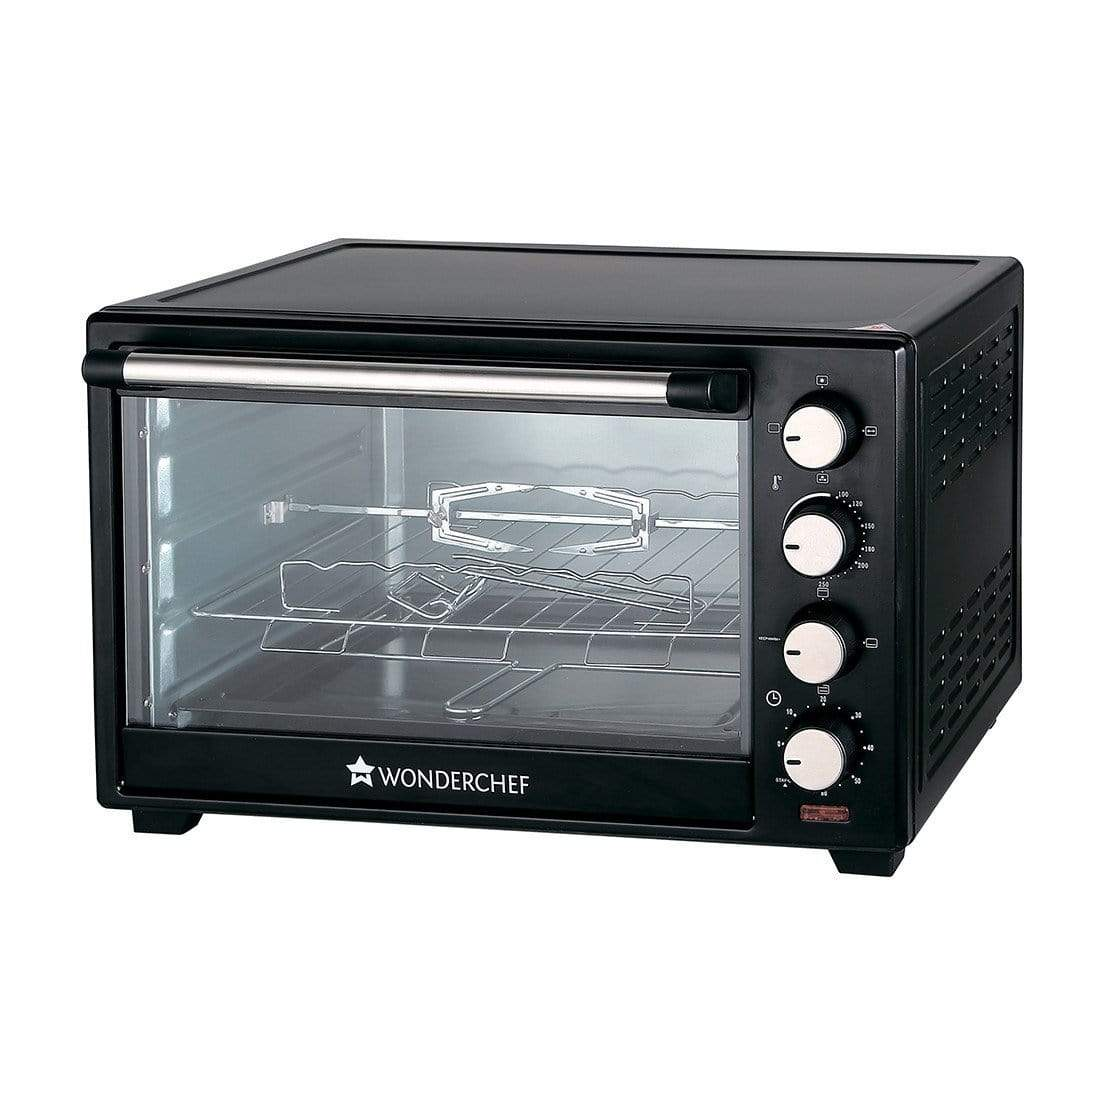 Wonderchef 63152220 28-Litre Oven Toaster Grill with Convection and Rotisserie (Black) - KITCHEN MART